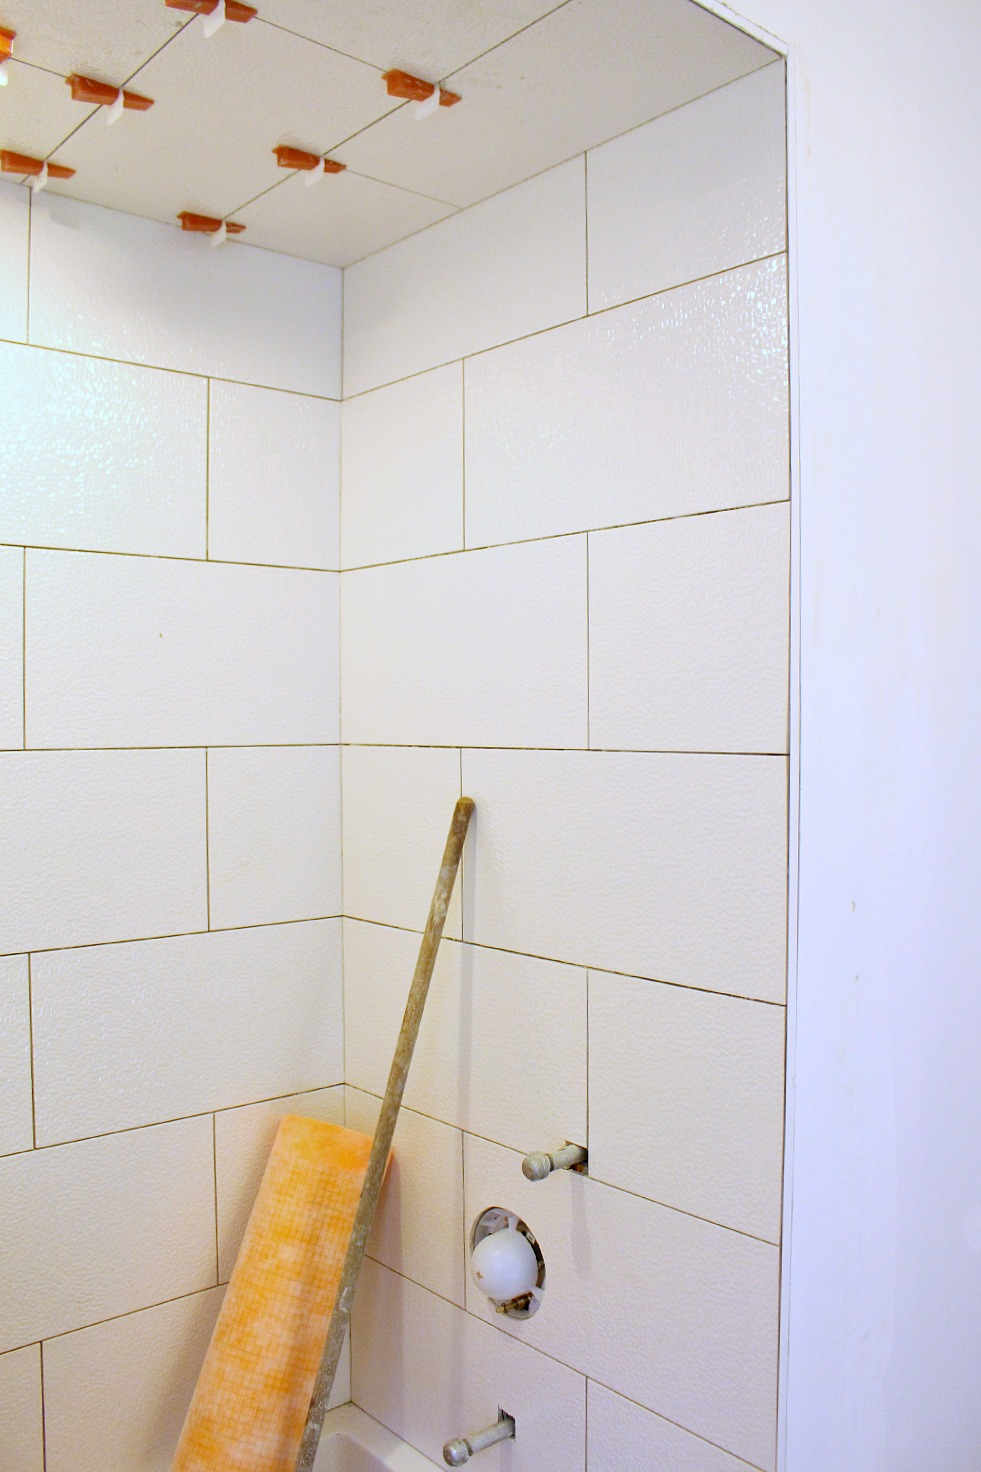 Bathtub surround getting tiled